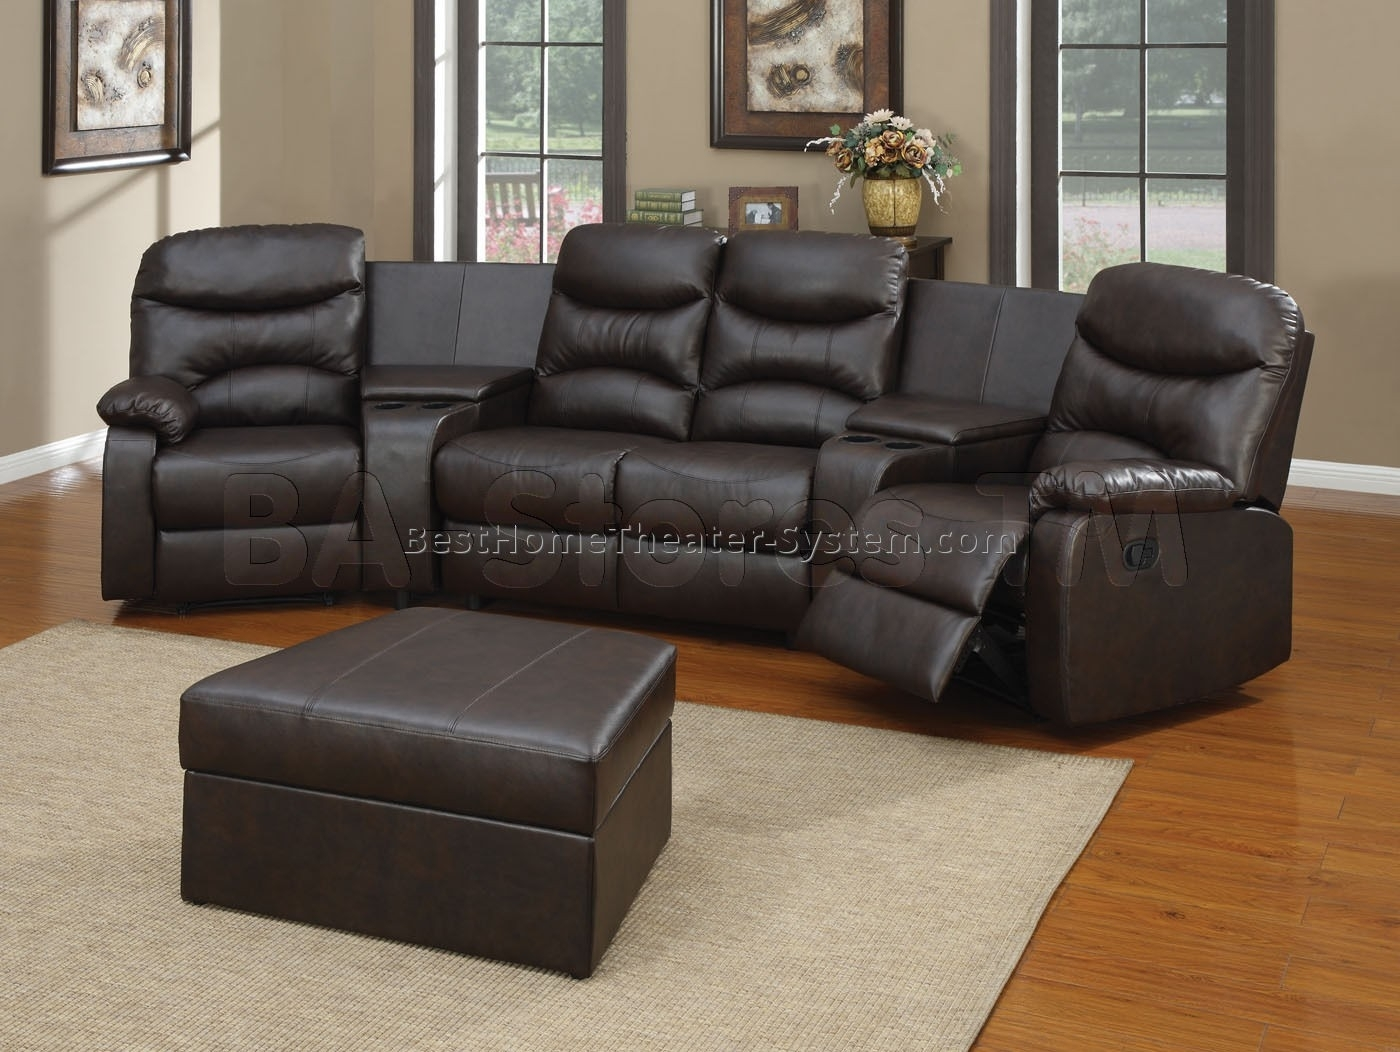 Awesome Sectional Sofa Theater Style – Mediasupload Within Kanes Sectional Sofas (View 6 of 10)